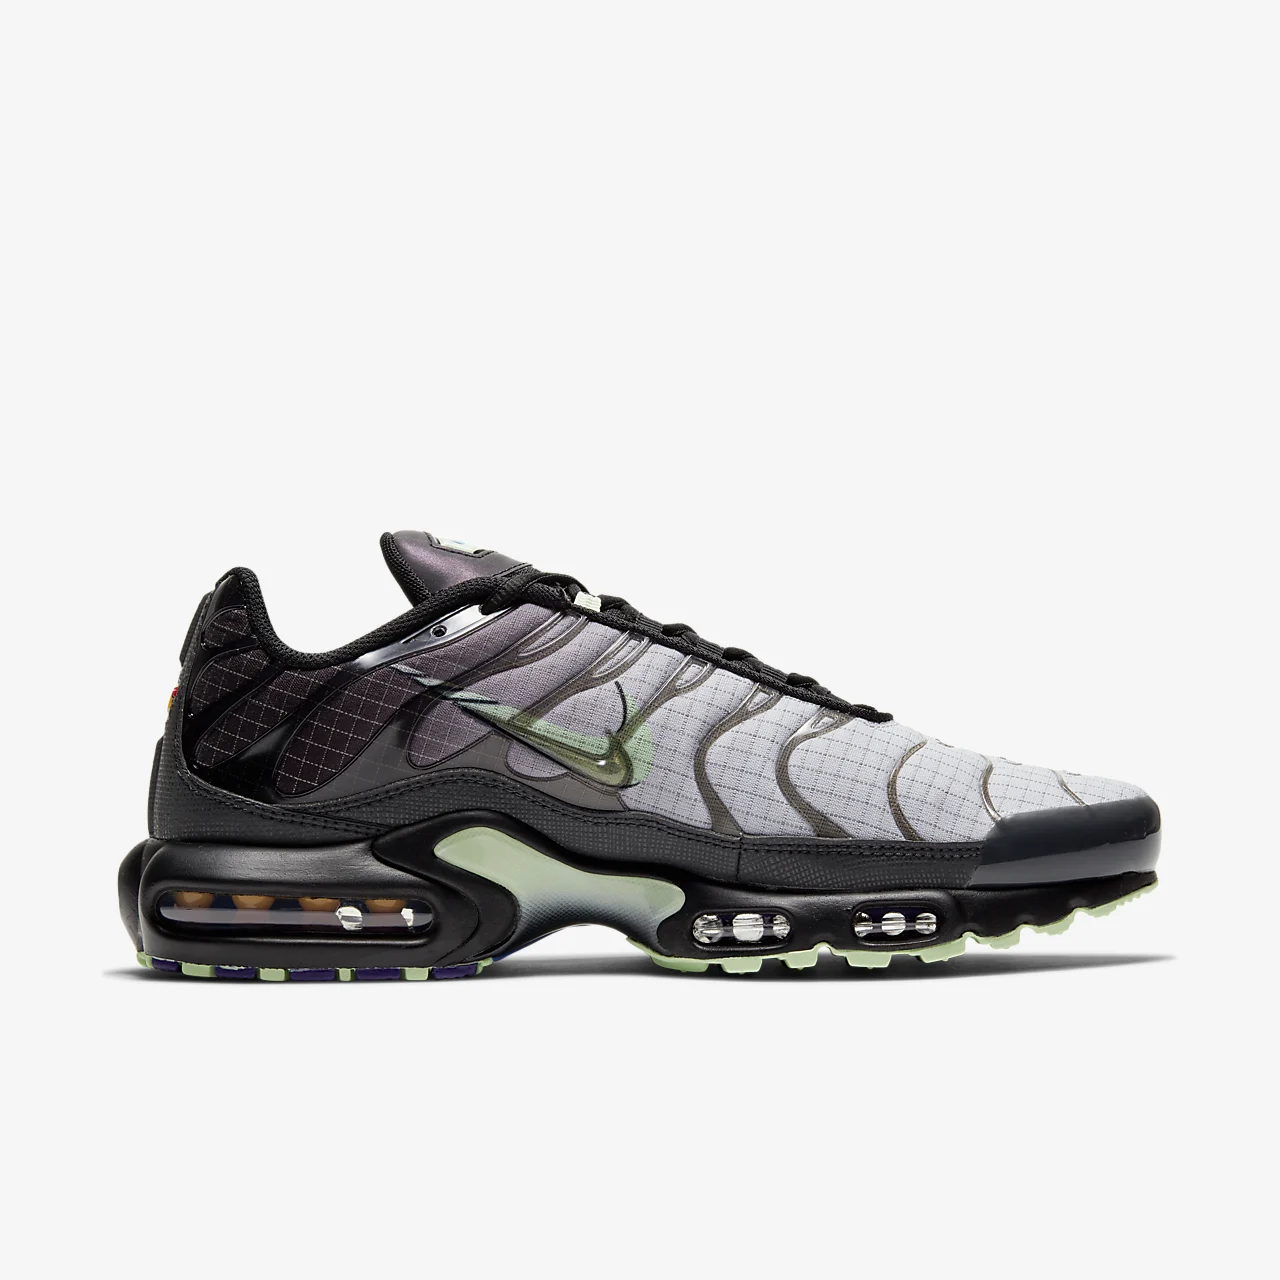 유럽직배송 나이키 NIKE Nike Air Max Plus Men's Shoe CT1619-001